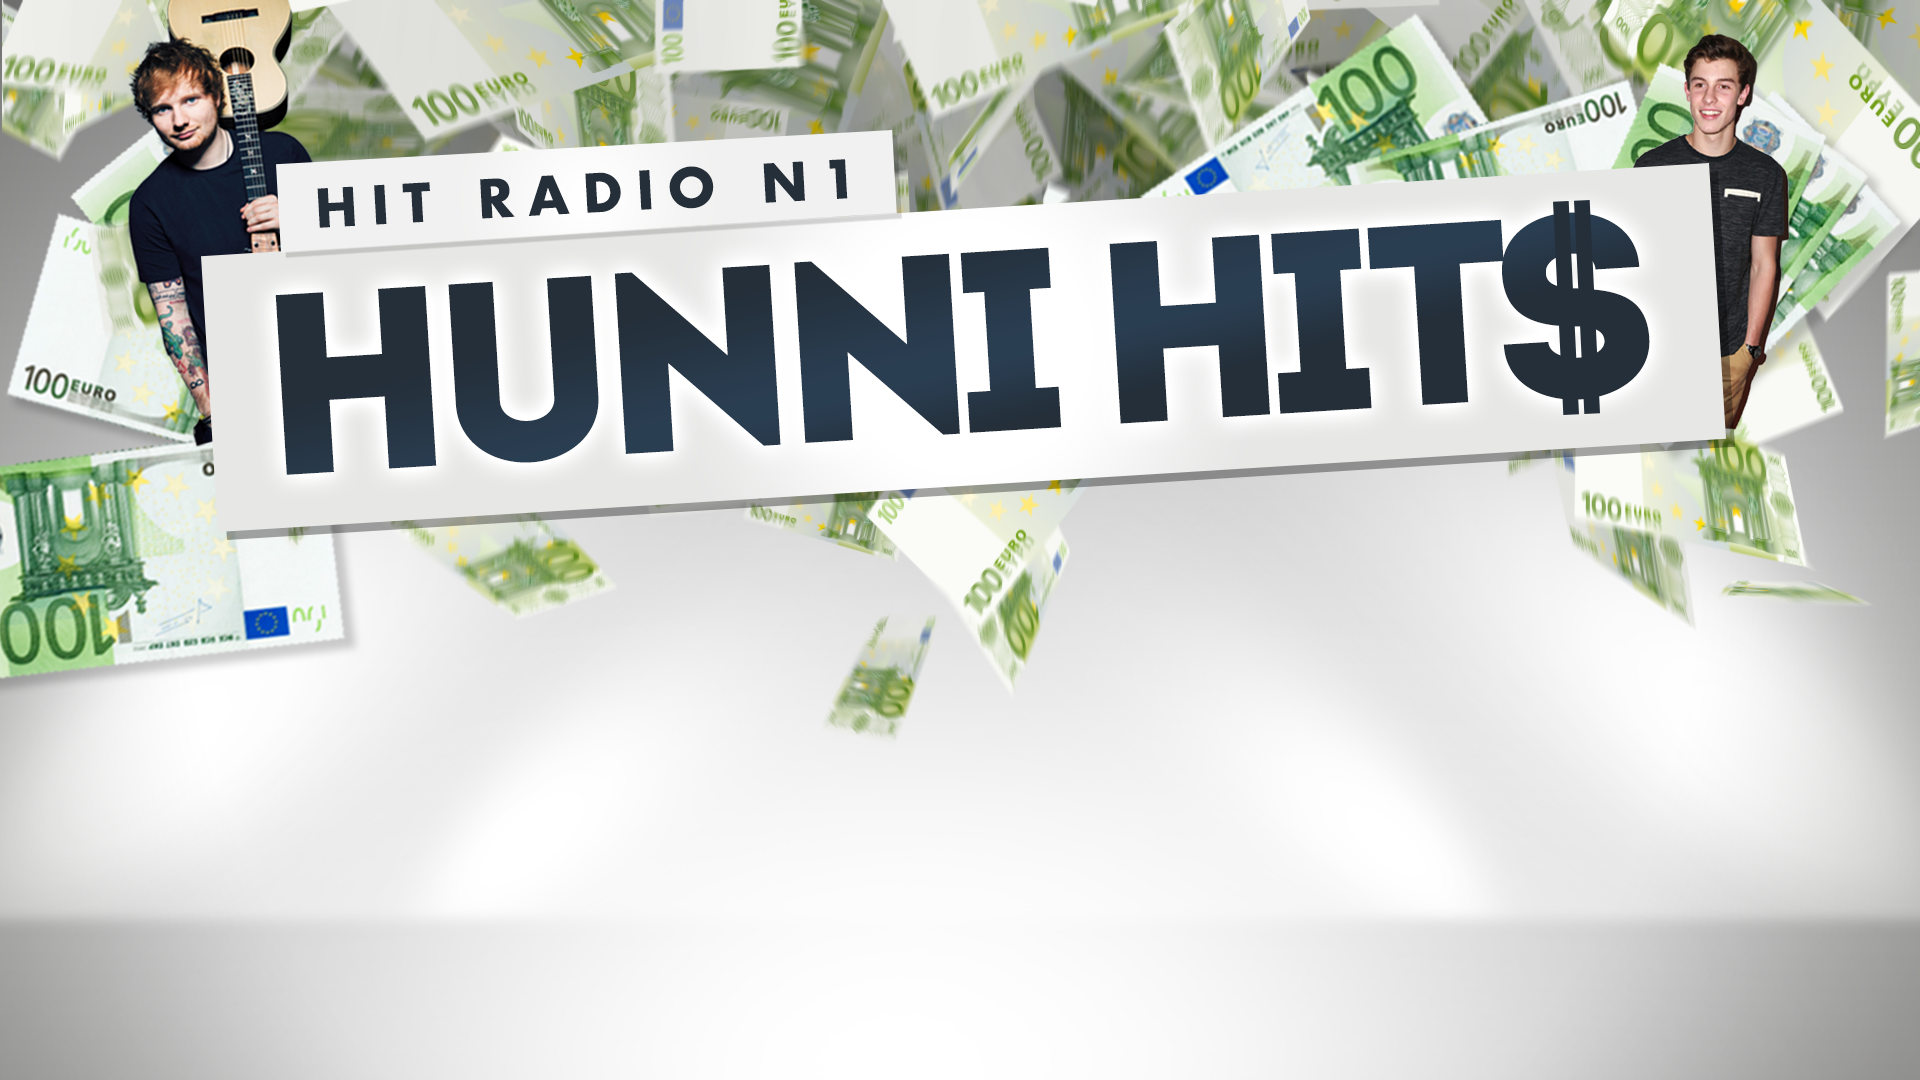 Die Hit Radio N1 Hunni-Hits